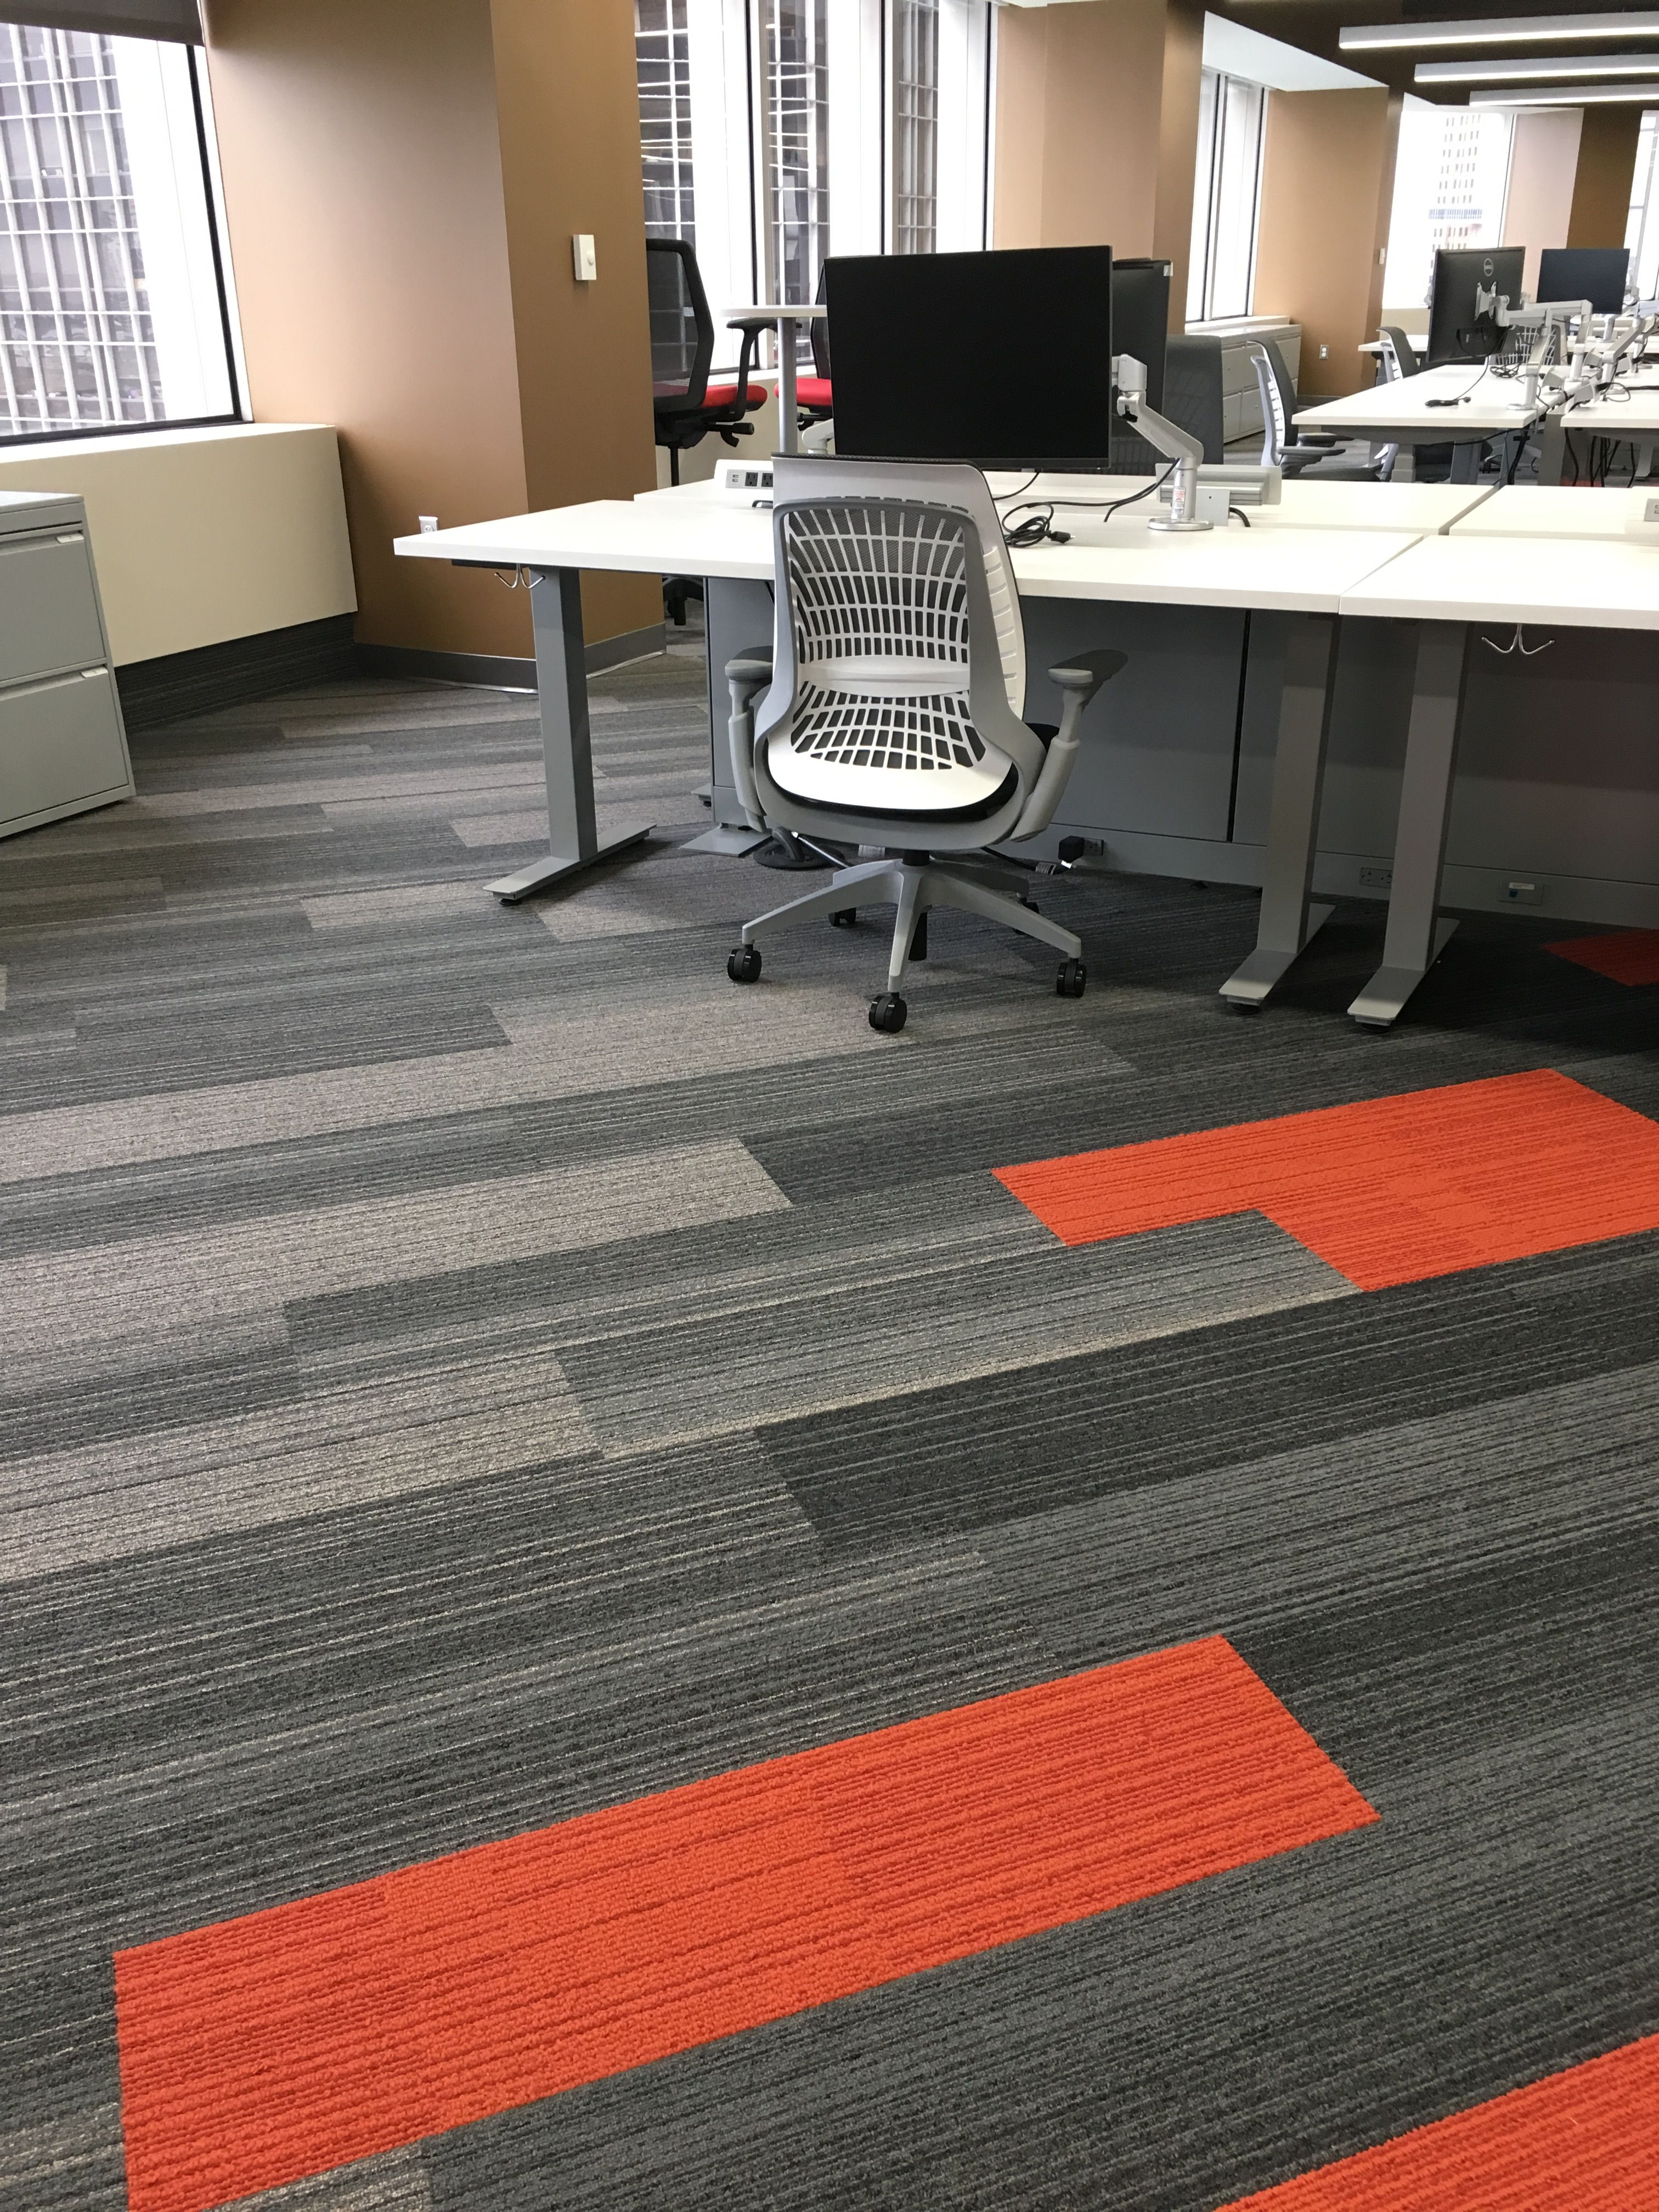 Interface Shiver Me Timbers Sycamore And Hickory Flooring Inspiration Modular Carpet Patterned Carpet